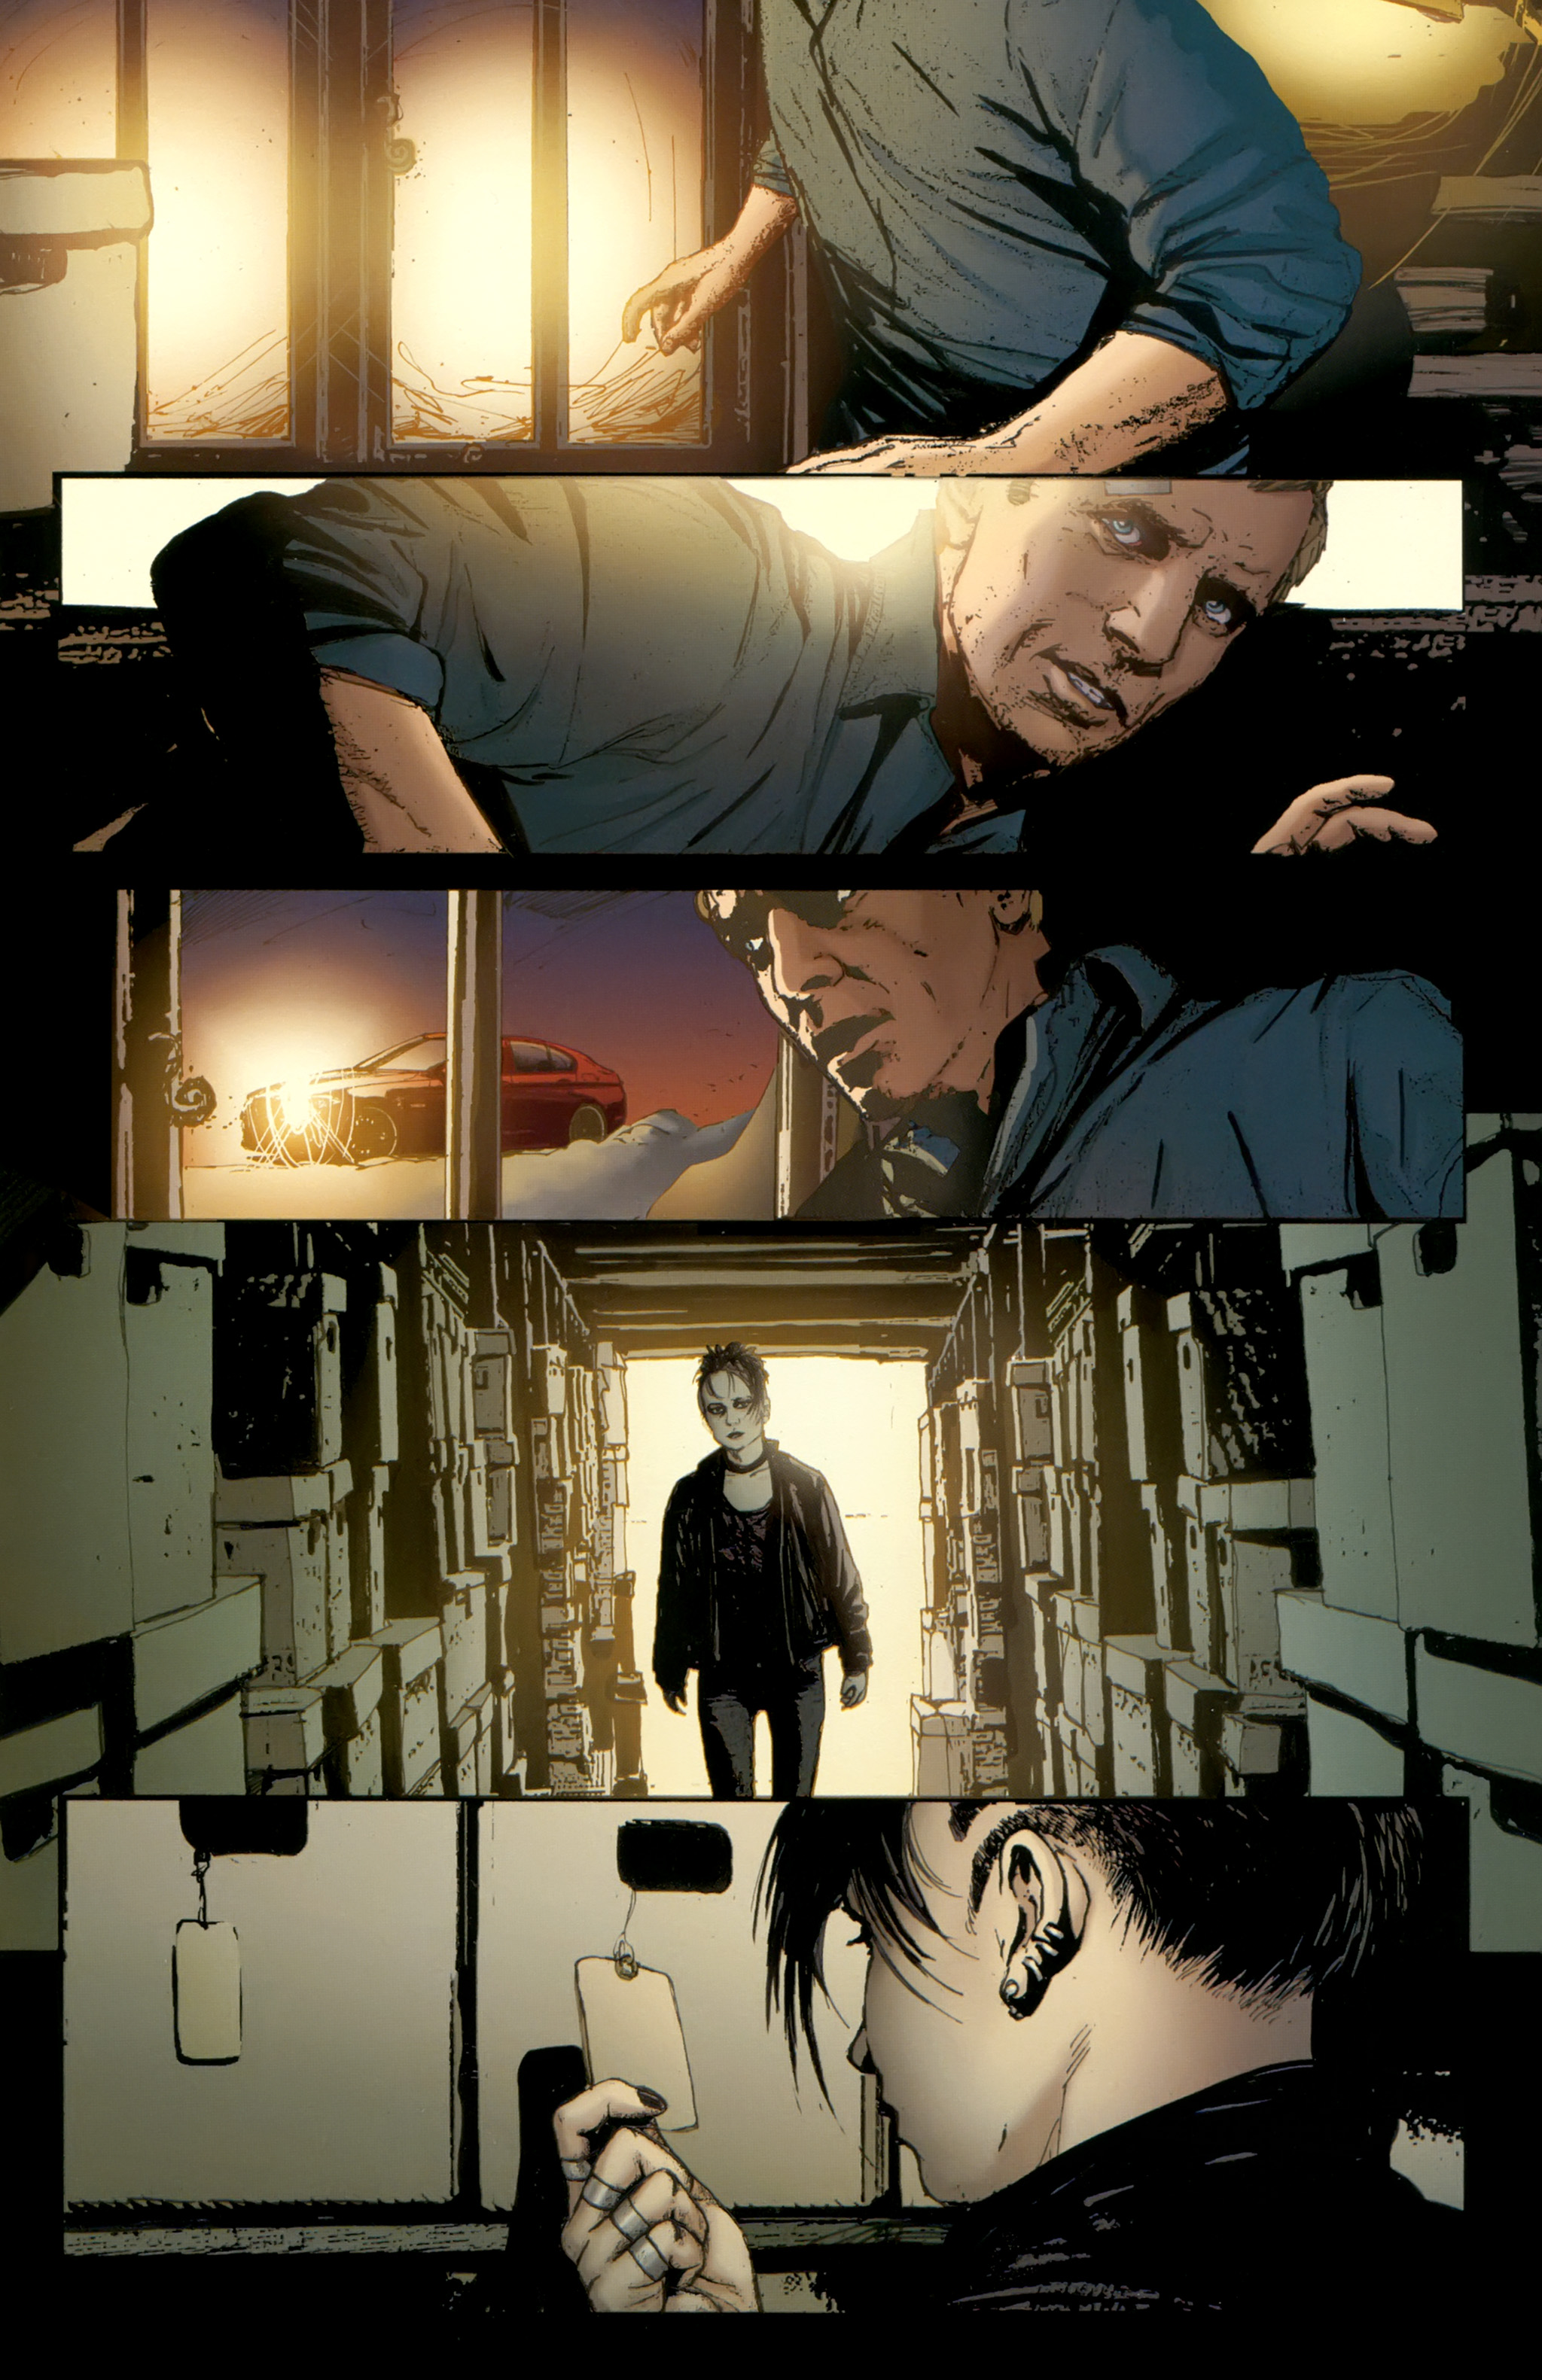 Read online The Girl With the Dragon Tattoo comic -  Issue # TPB 2 - 77